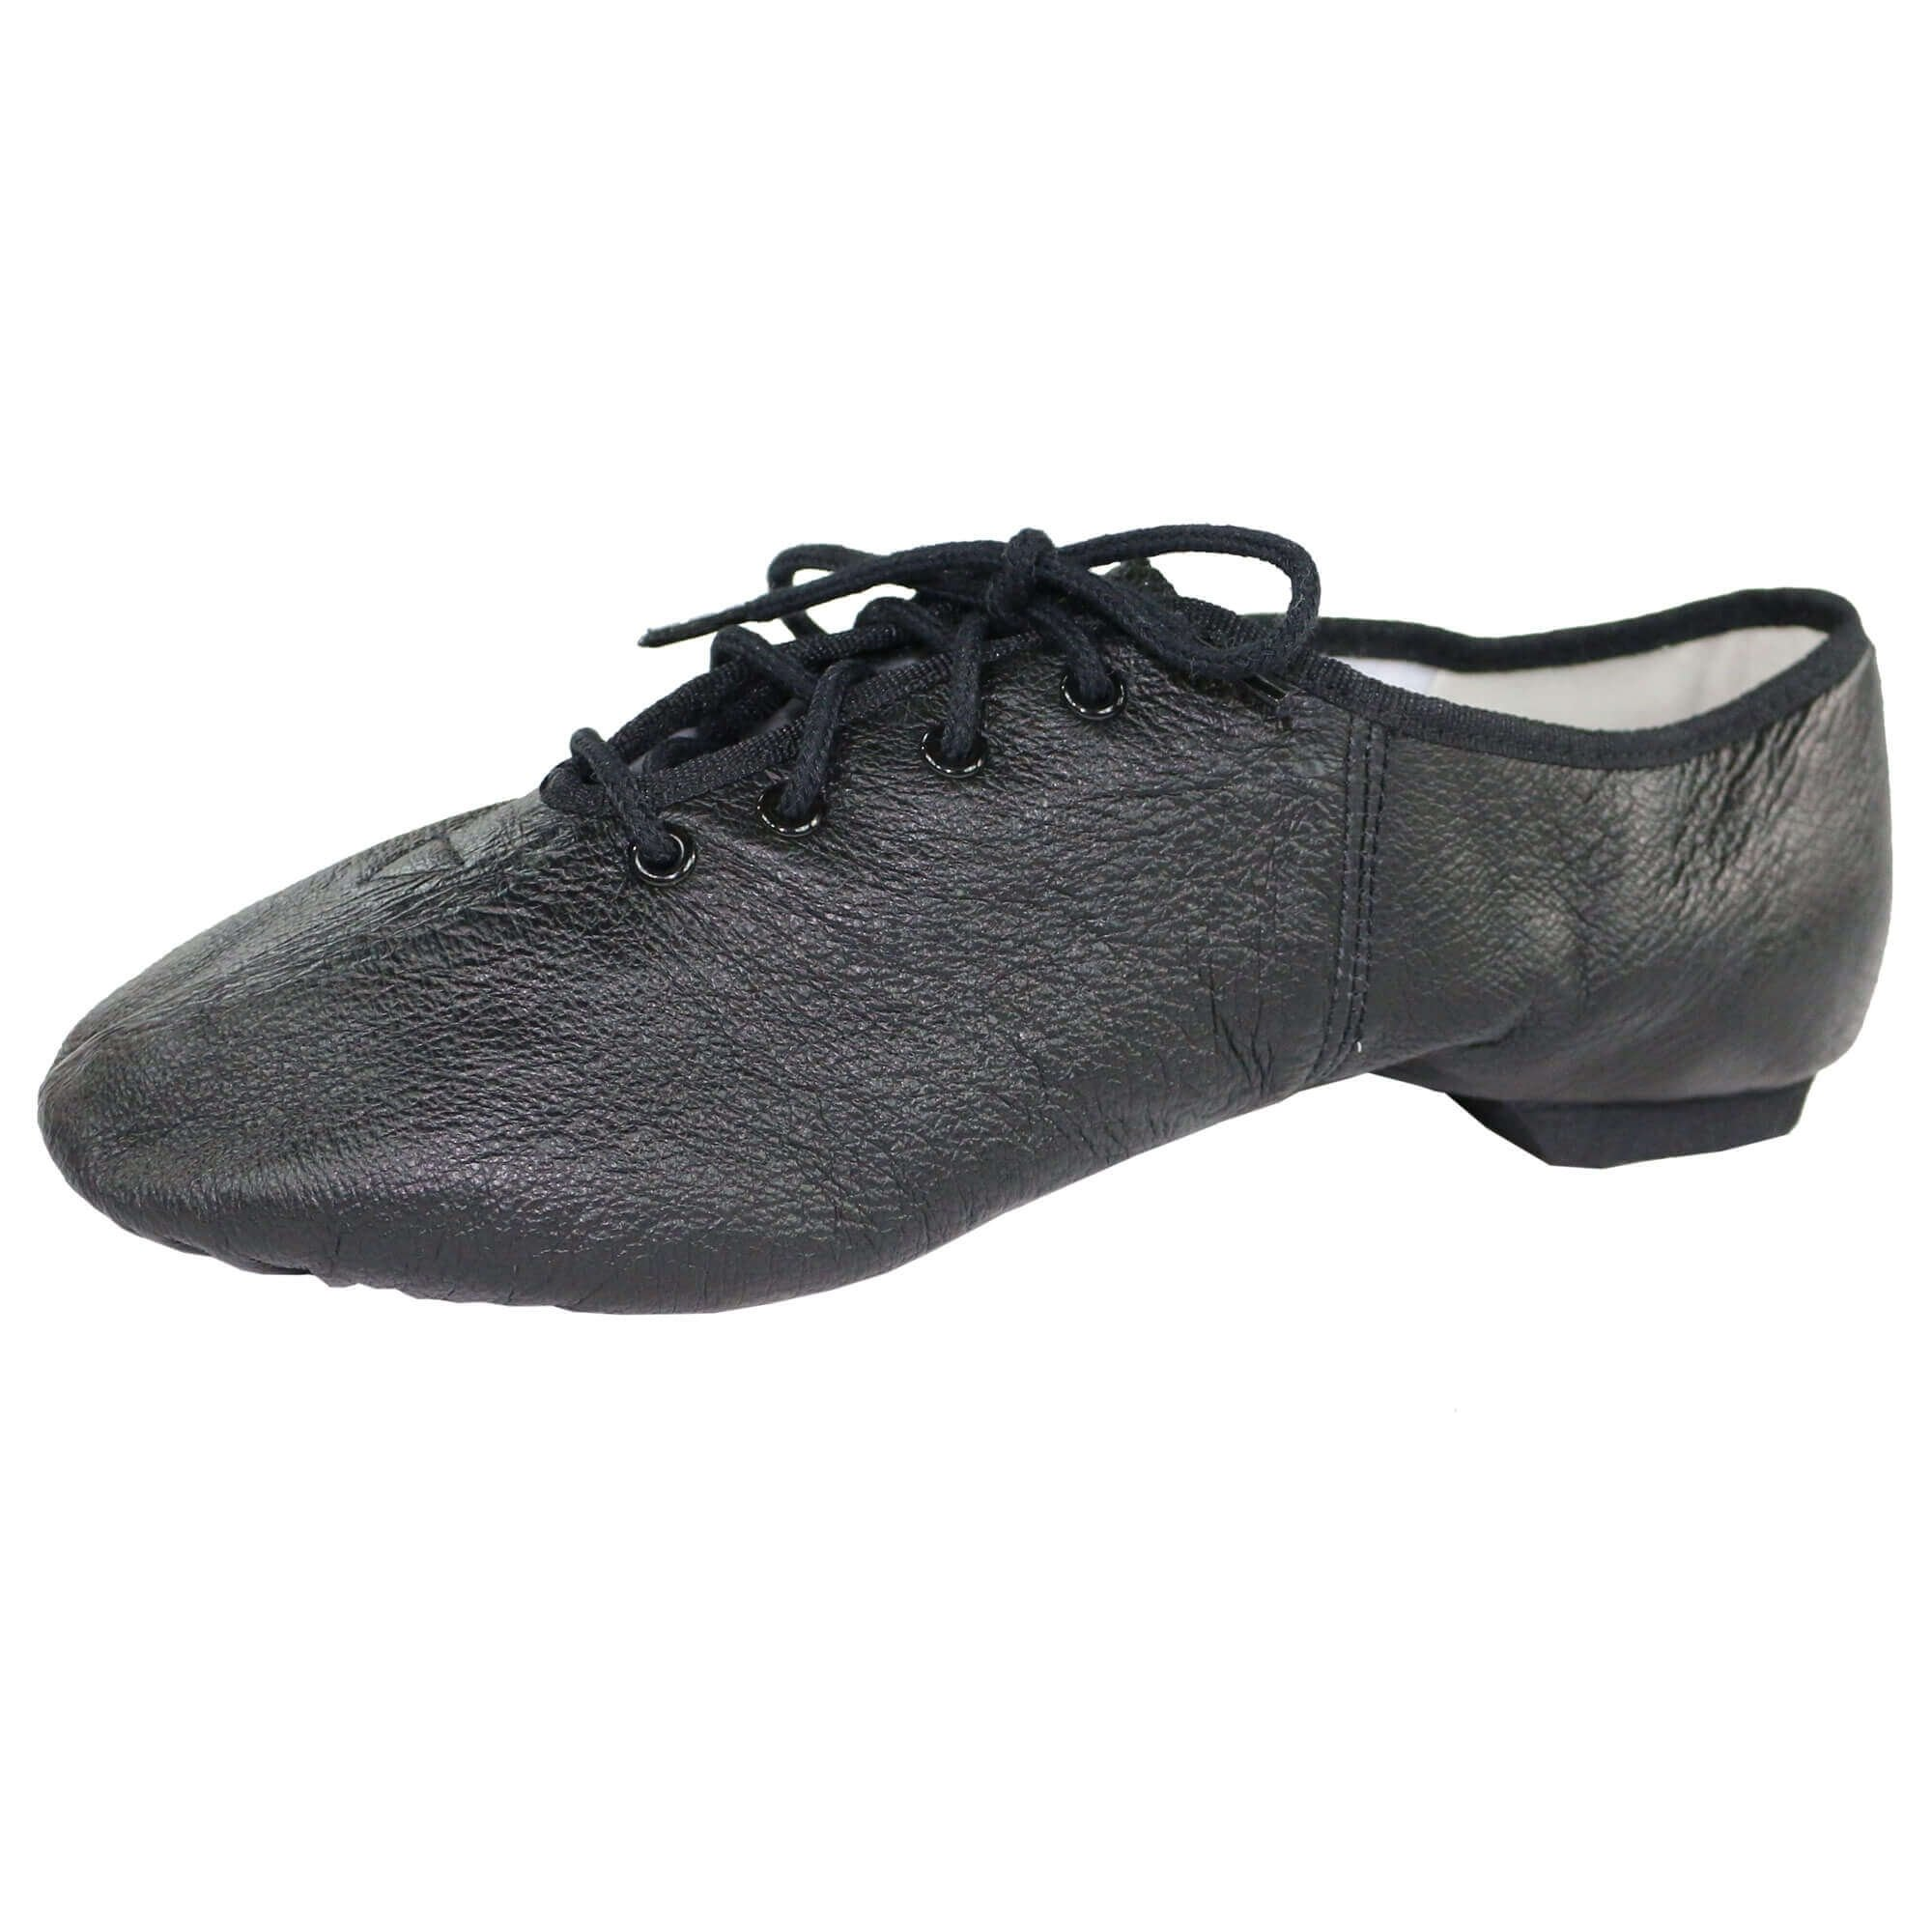 Danzcue Womens Black Leather Lace up Jazz Shoes, 8 M US by Danzcue (Image #3)